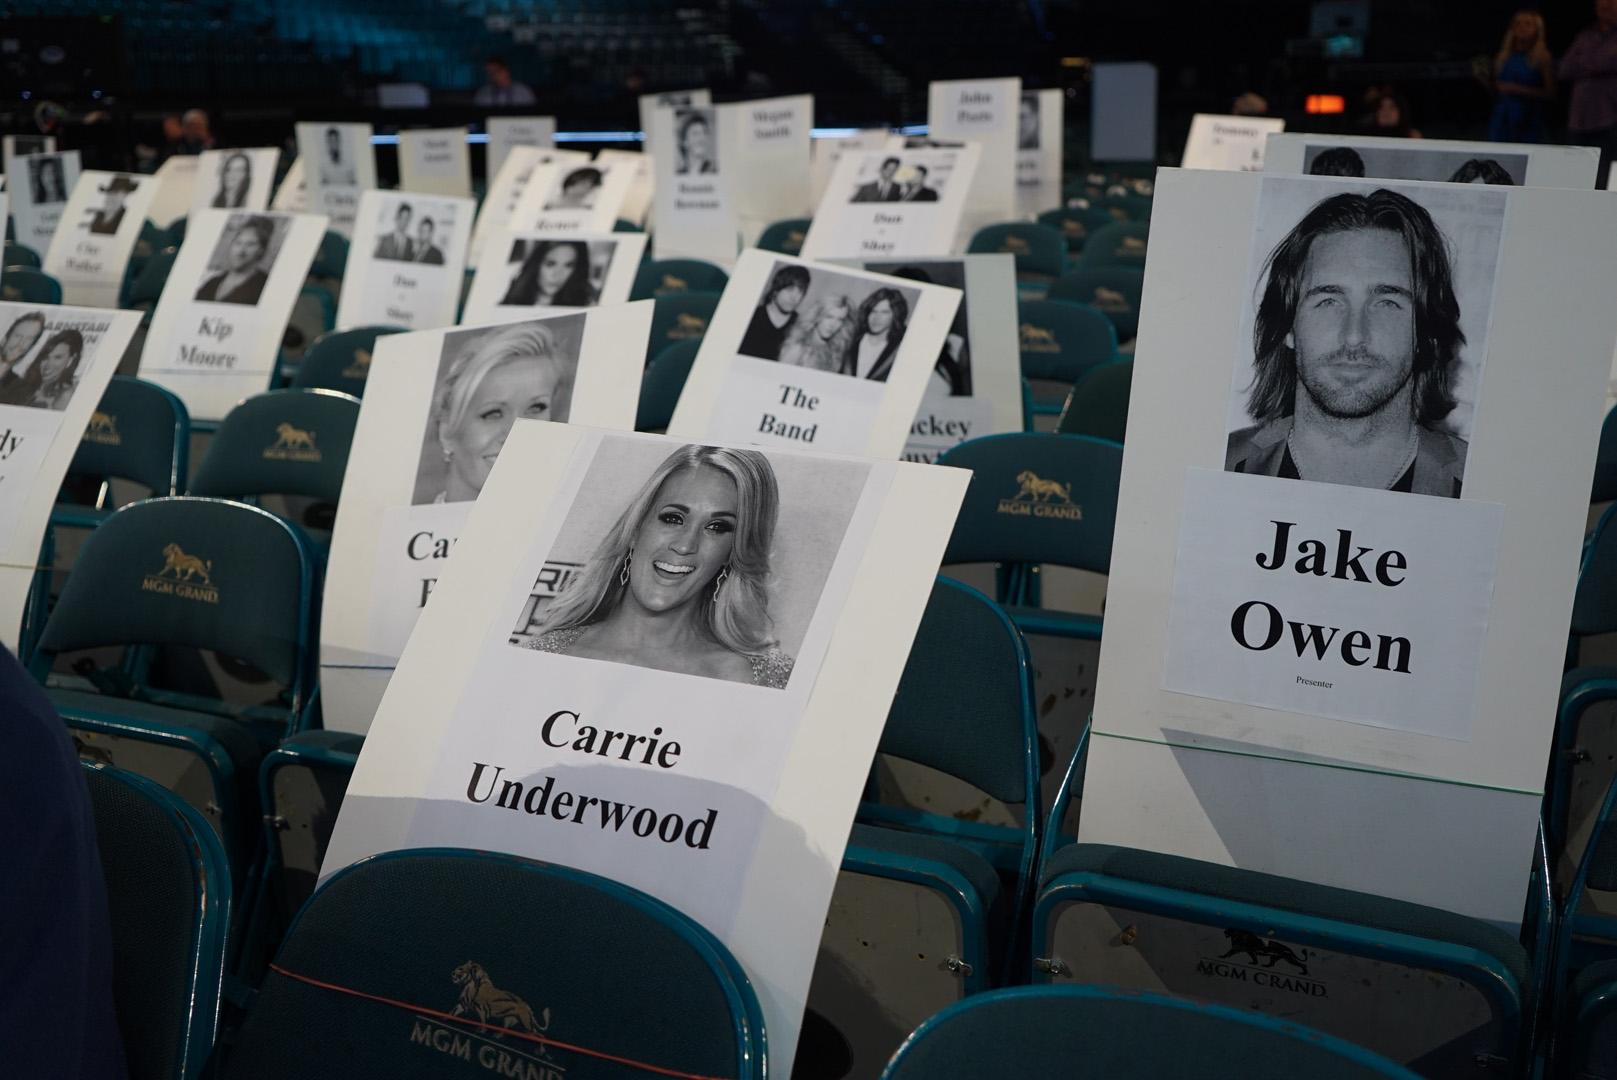 Carrie Underwood and Jake Owen are bound to bump into each other.